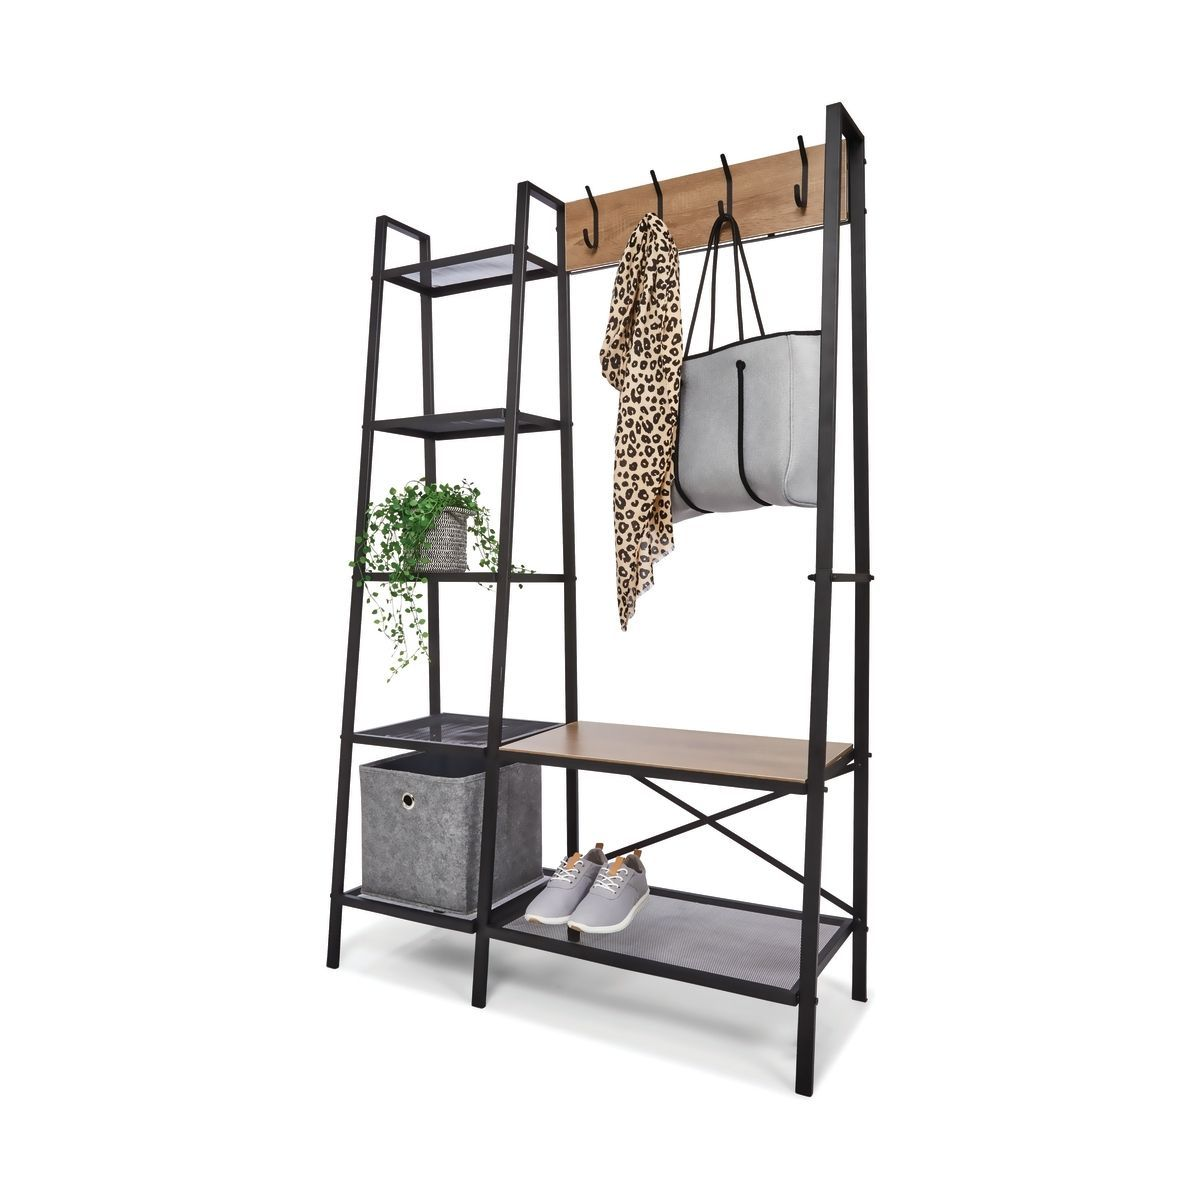 Entryway Storage Unit With Bench Kmart 377035800054965230 2020